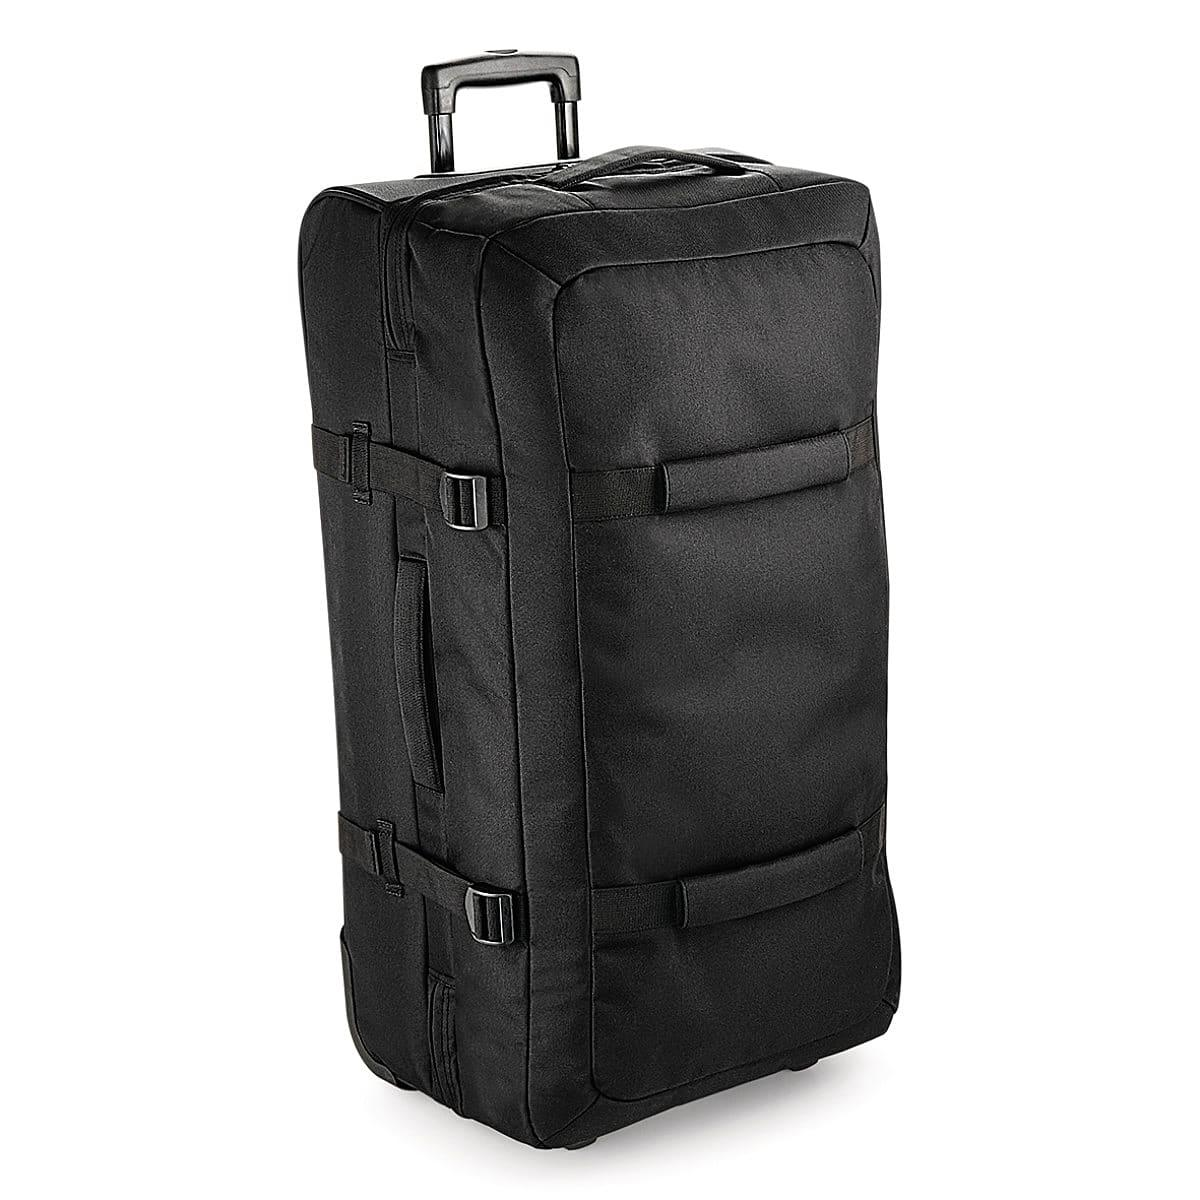 Bagbase Escape Check In Wheelie in Black (Product Code: BG483)